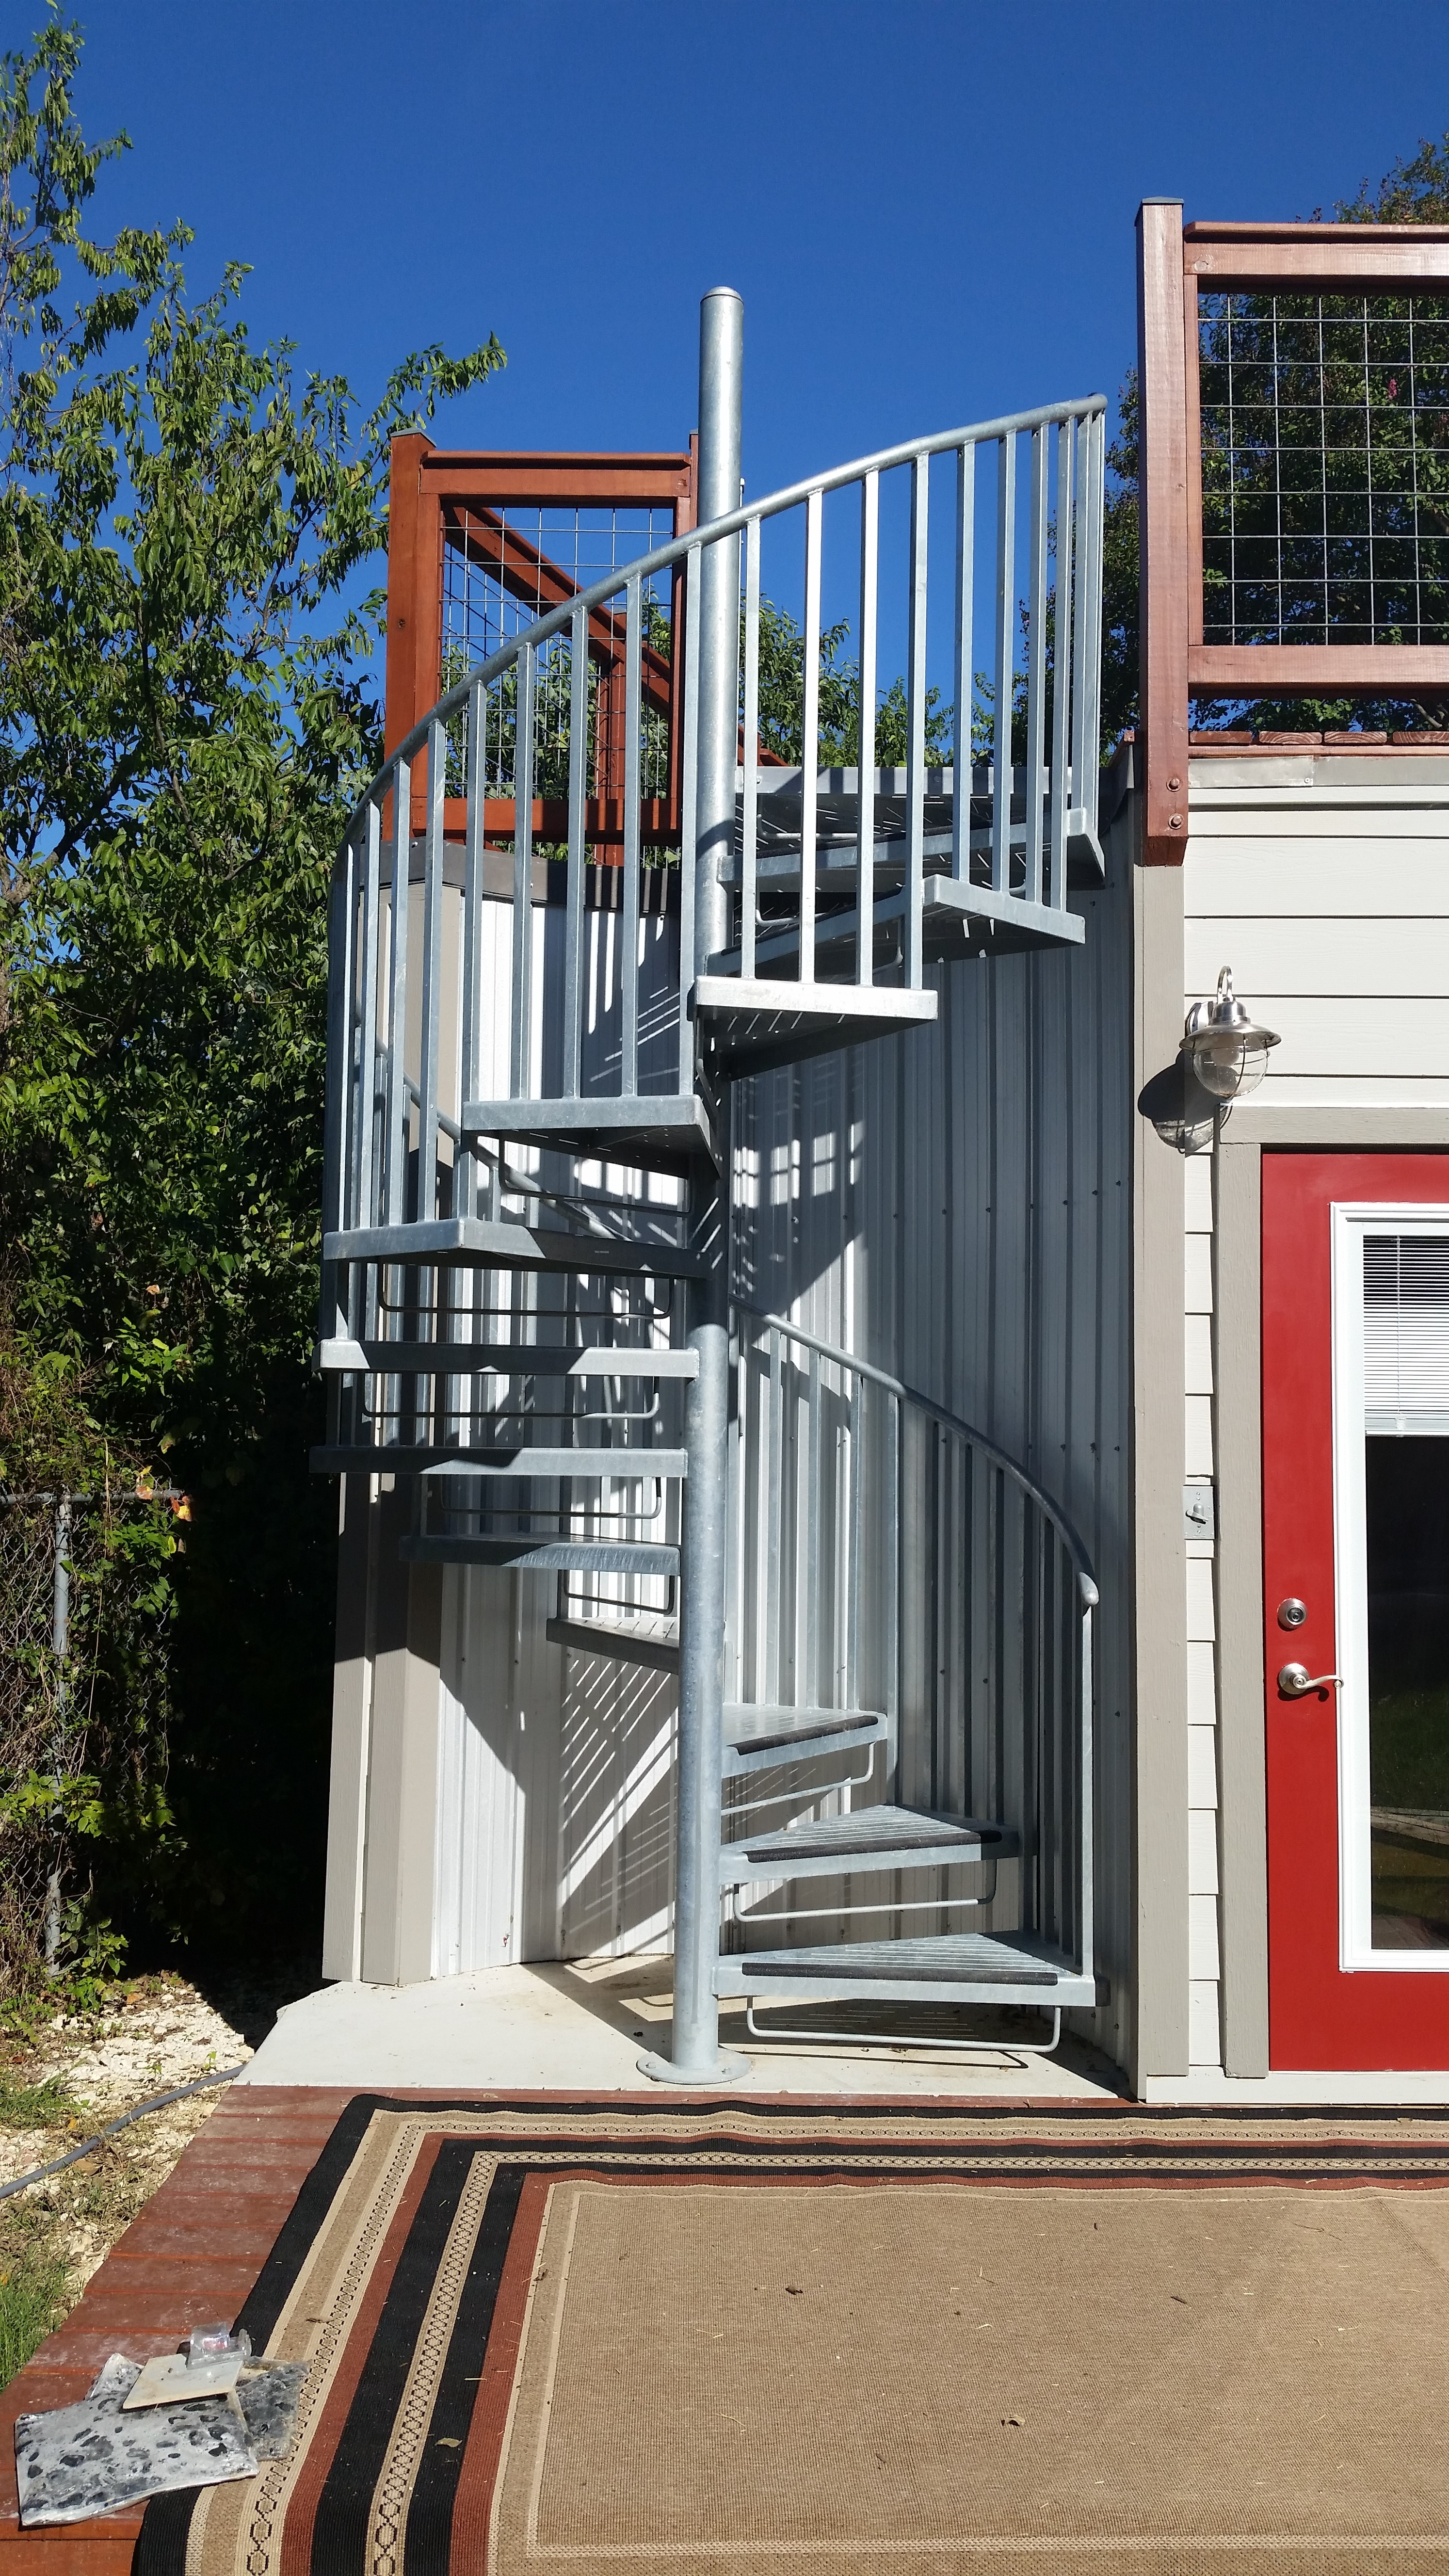 Residential Spiral Staircases Home Spiral Staircase | Outdoor Spiral Staircase Cost